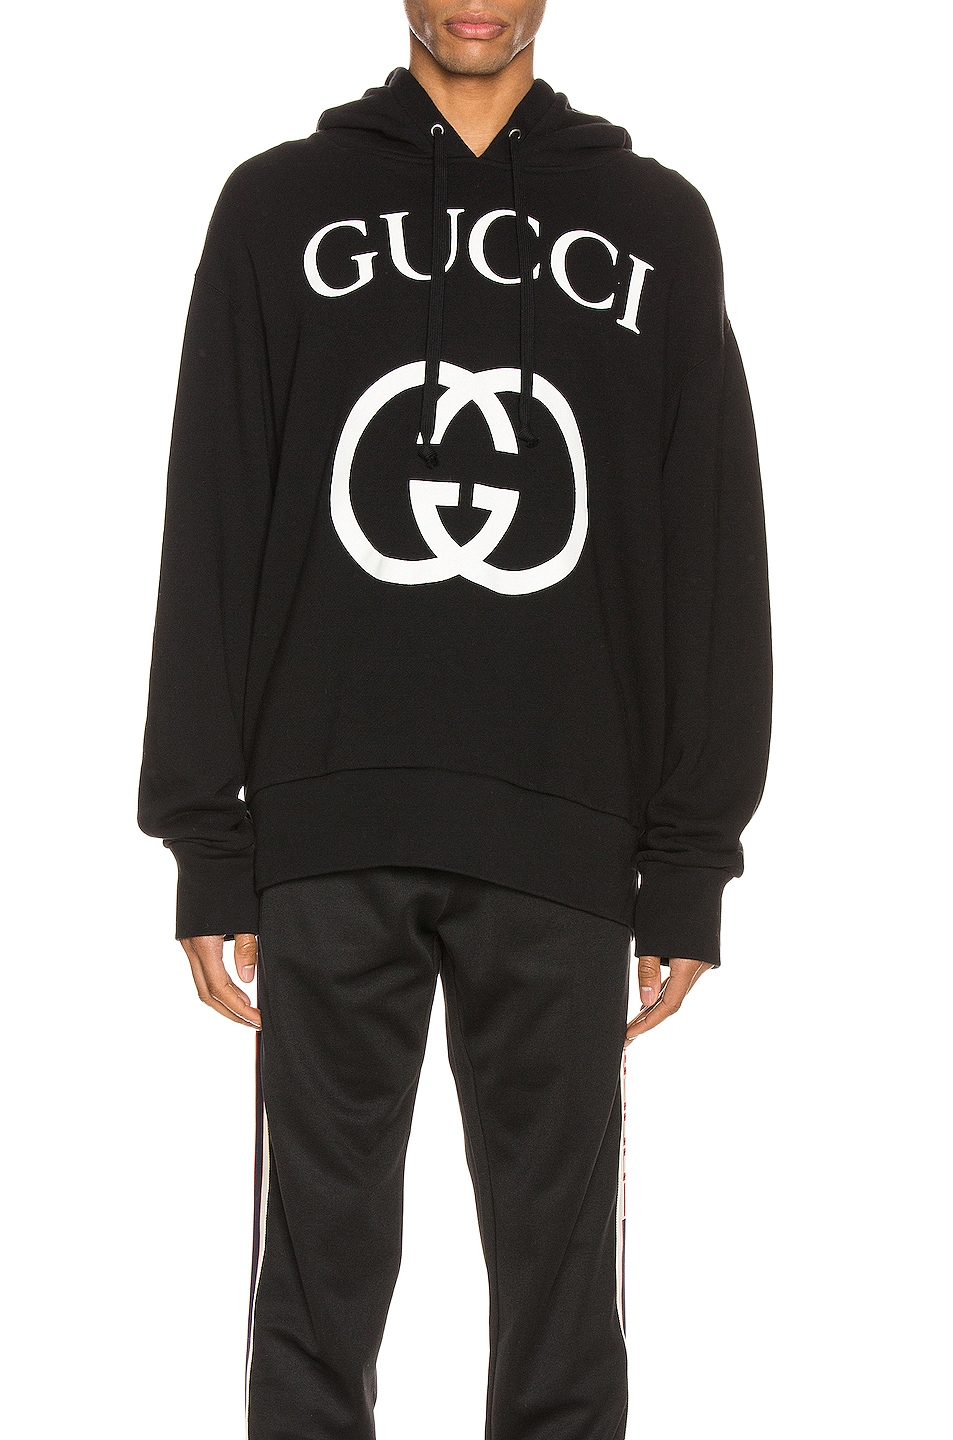 Image 1 of Gucci Hooded Sweatshirt With Interlocking G in Black & Ivory